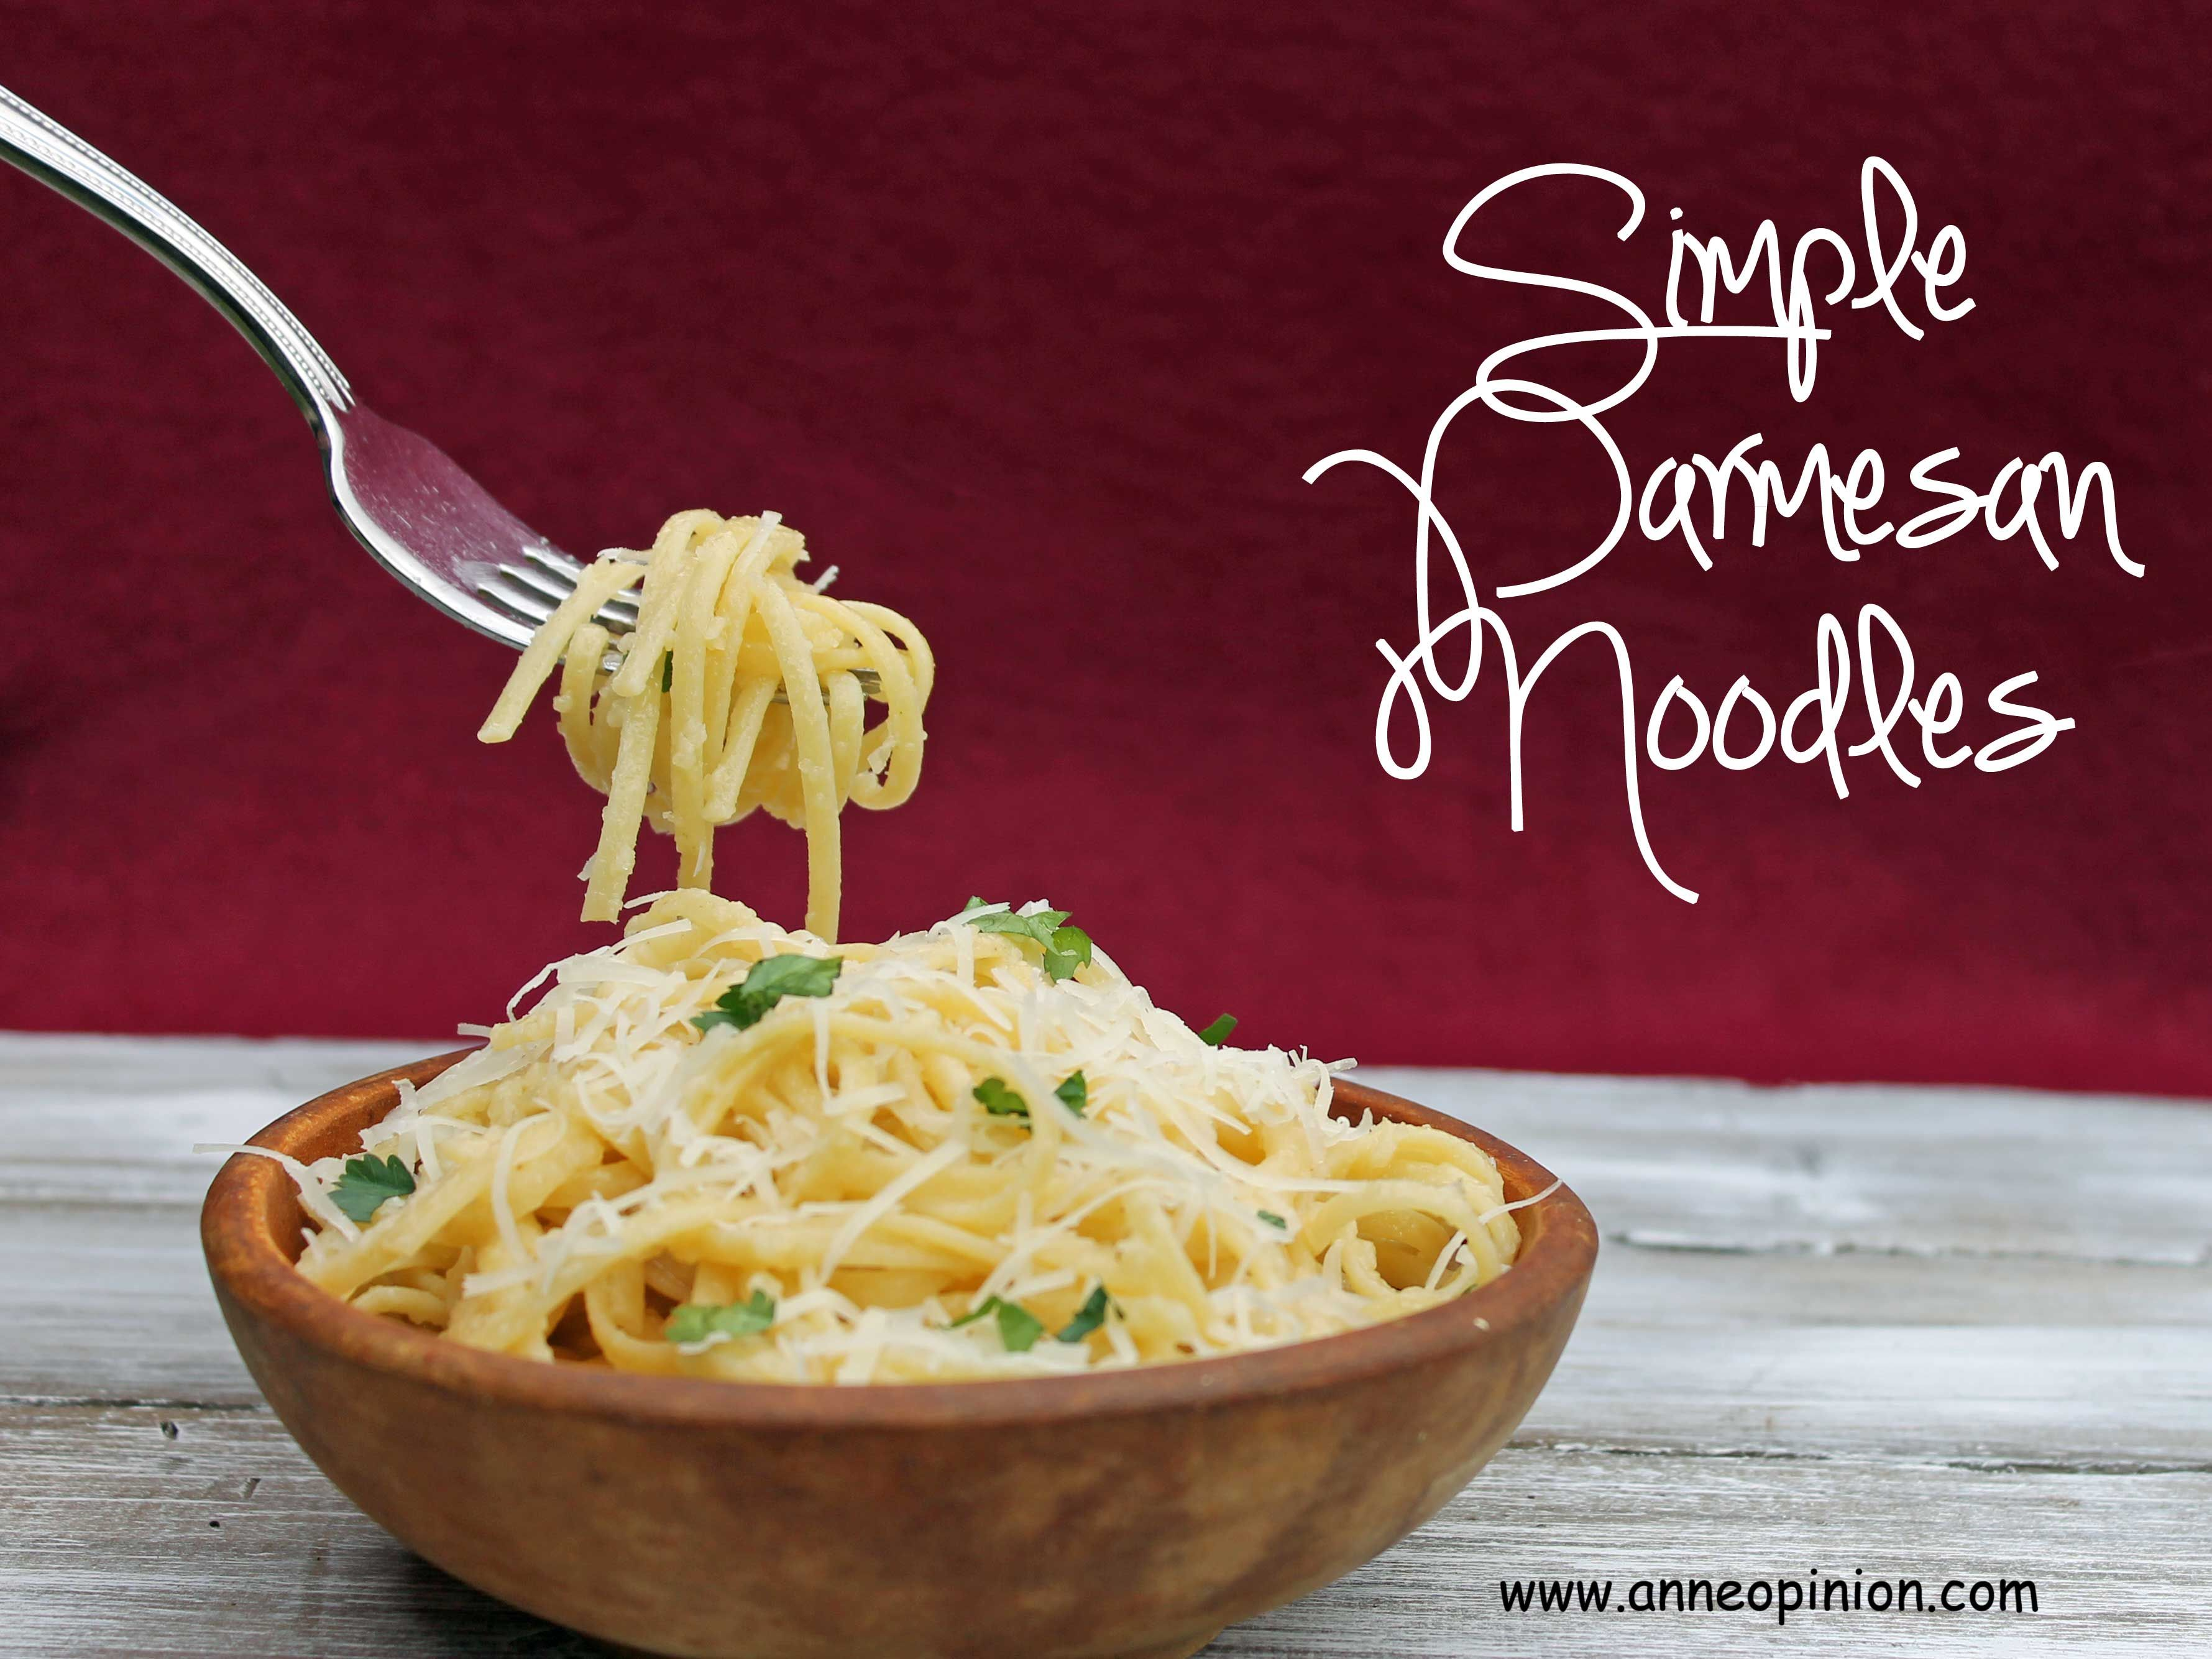 Parmesan Noodles- these were amazing!! All they are is butter, pasta and parmesan.  I'm normally not big on pasta, but I couldn't stop eating them!!